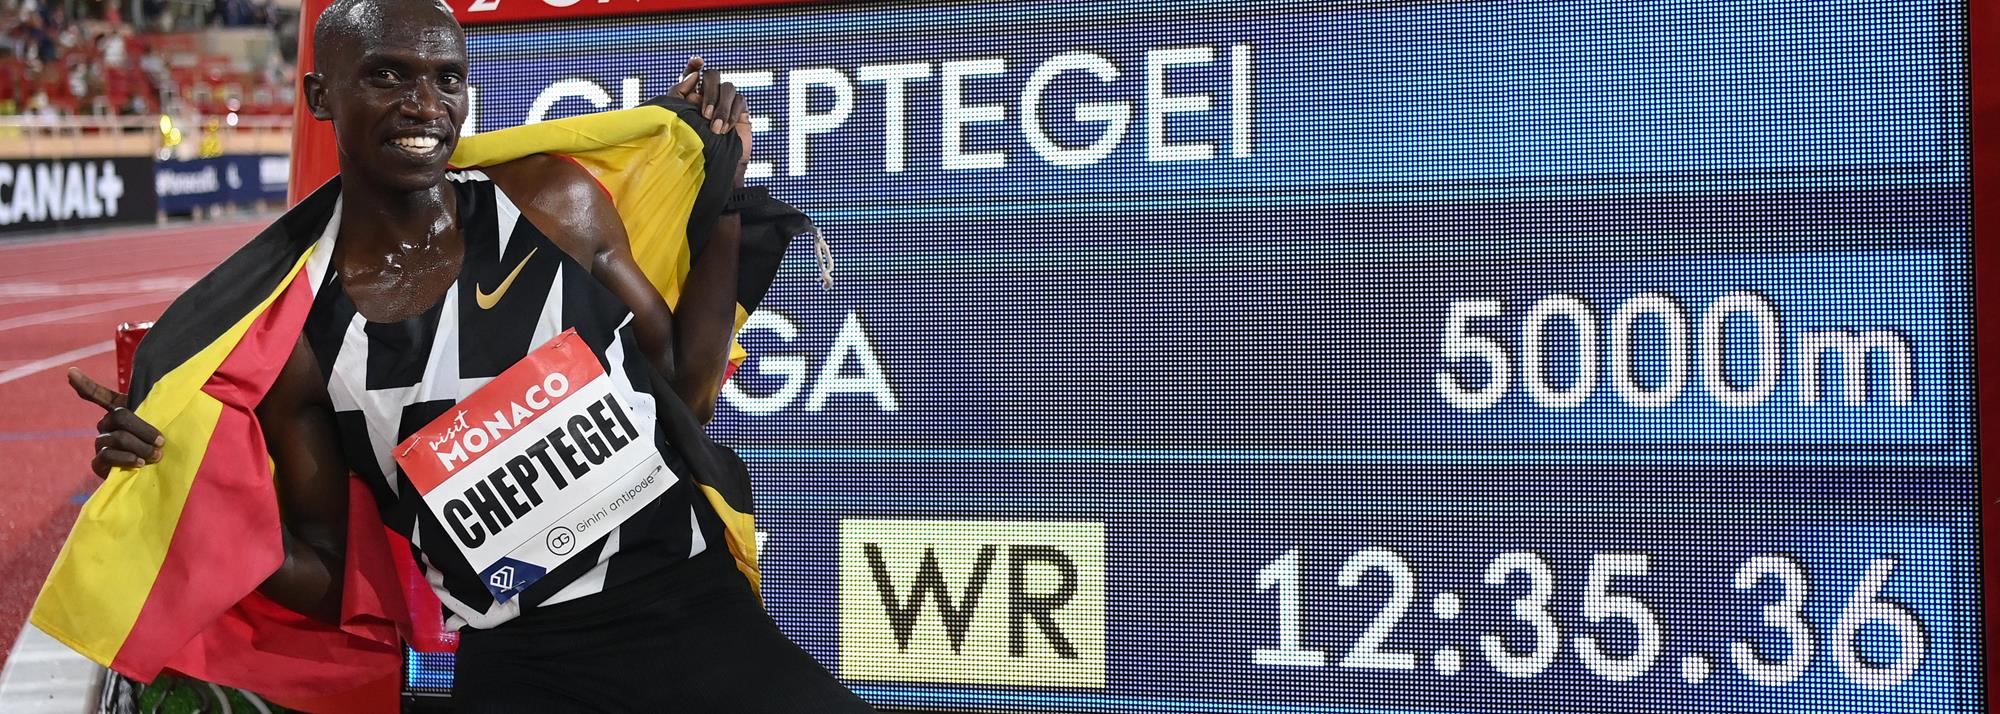 Ratified: Cheptegei's 5000m world record